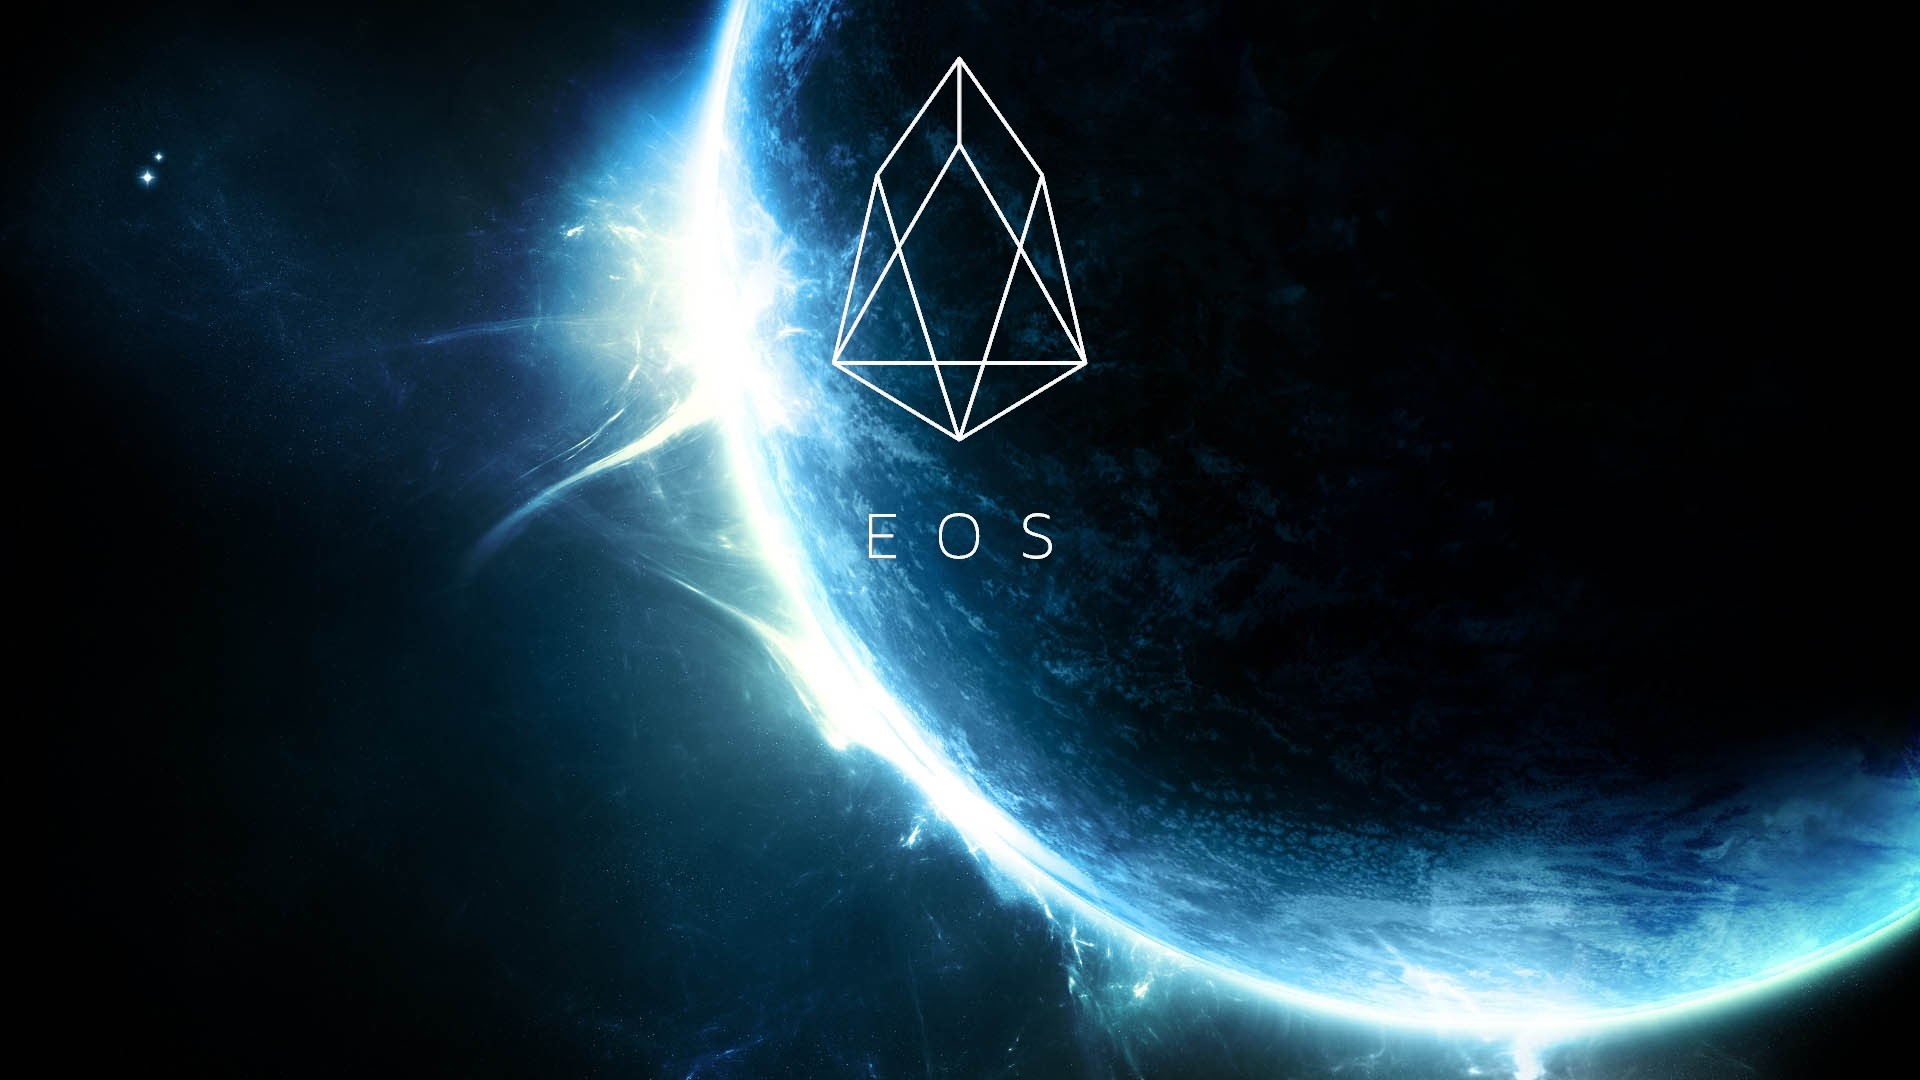 As we are impatiently waiting for every information about #EOS, here's some cool  space wallpapers. Hope you like it. :)